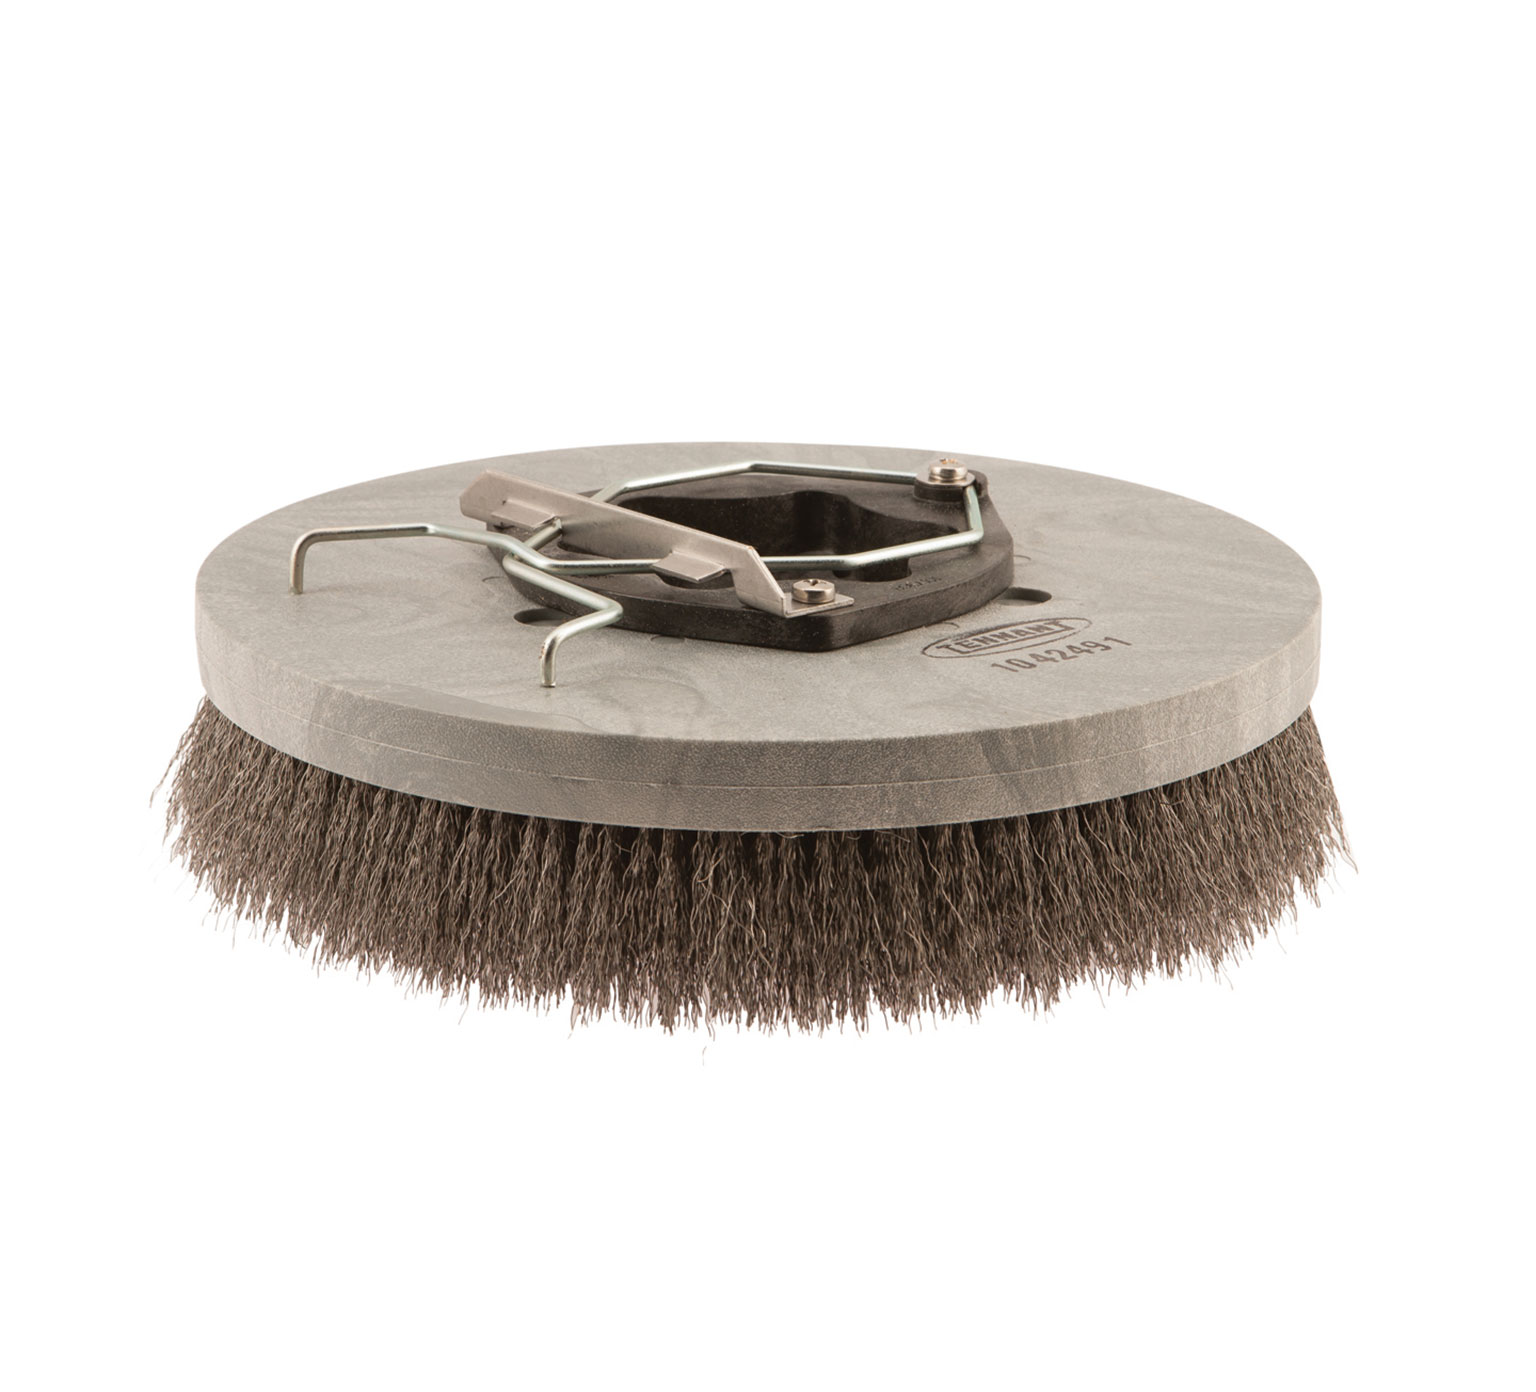 Wire Scrub Brush | Tennanttrue Wire Disk Scrub Brush 13 In 330 Mm Pn 1042491